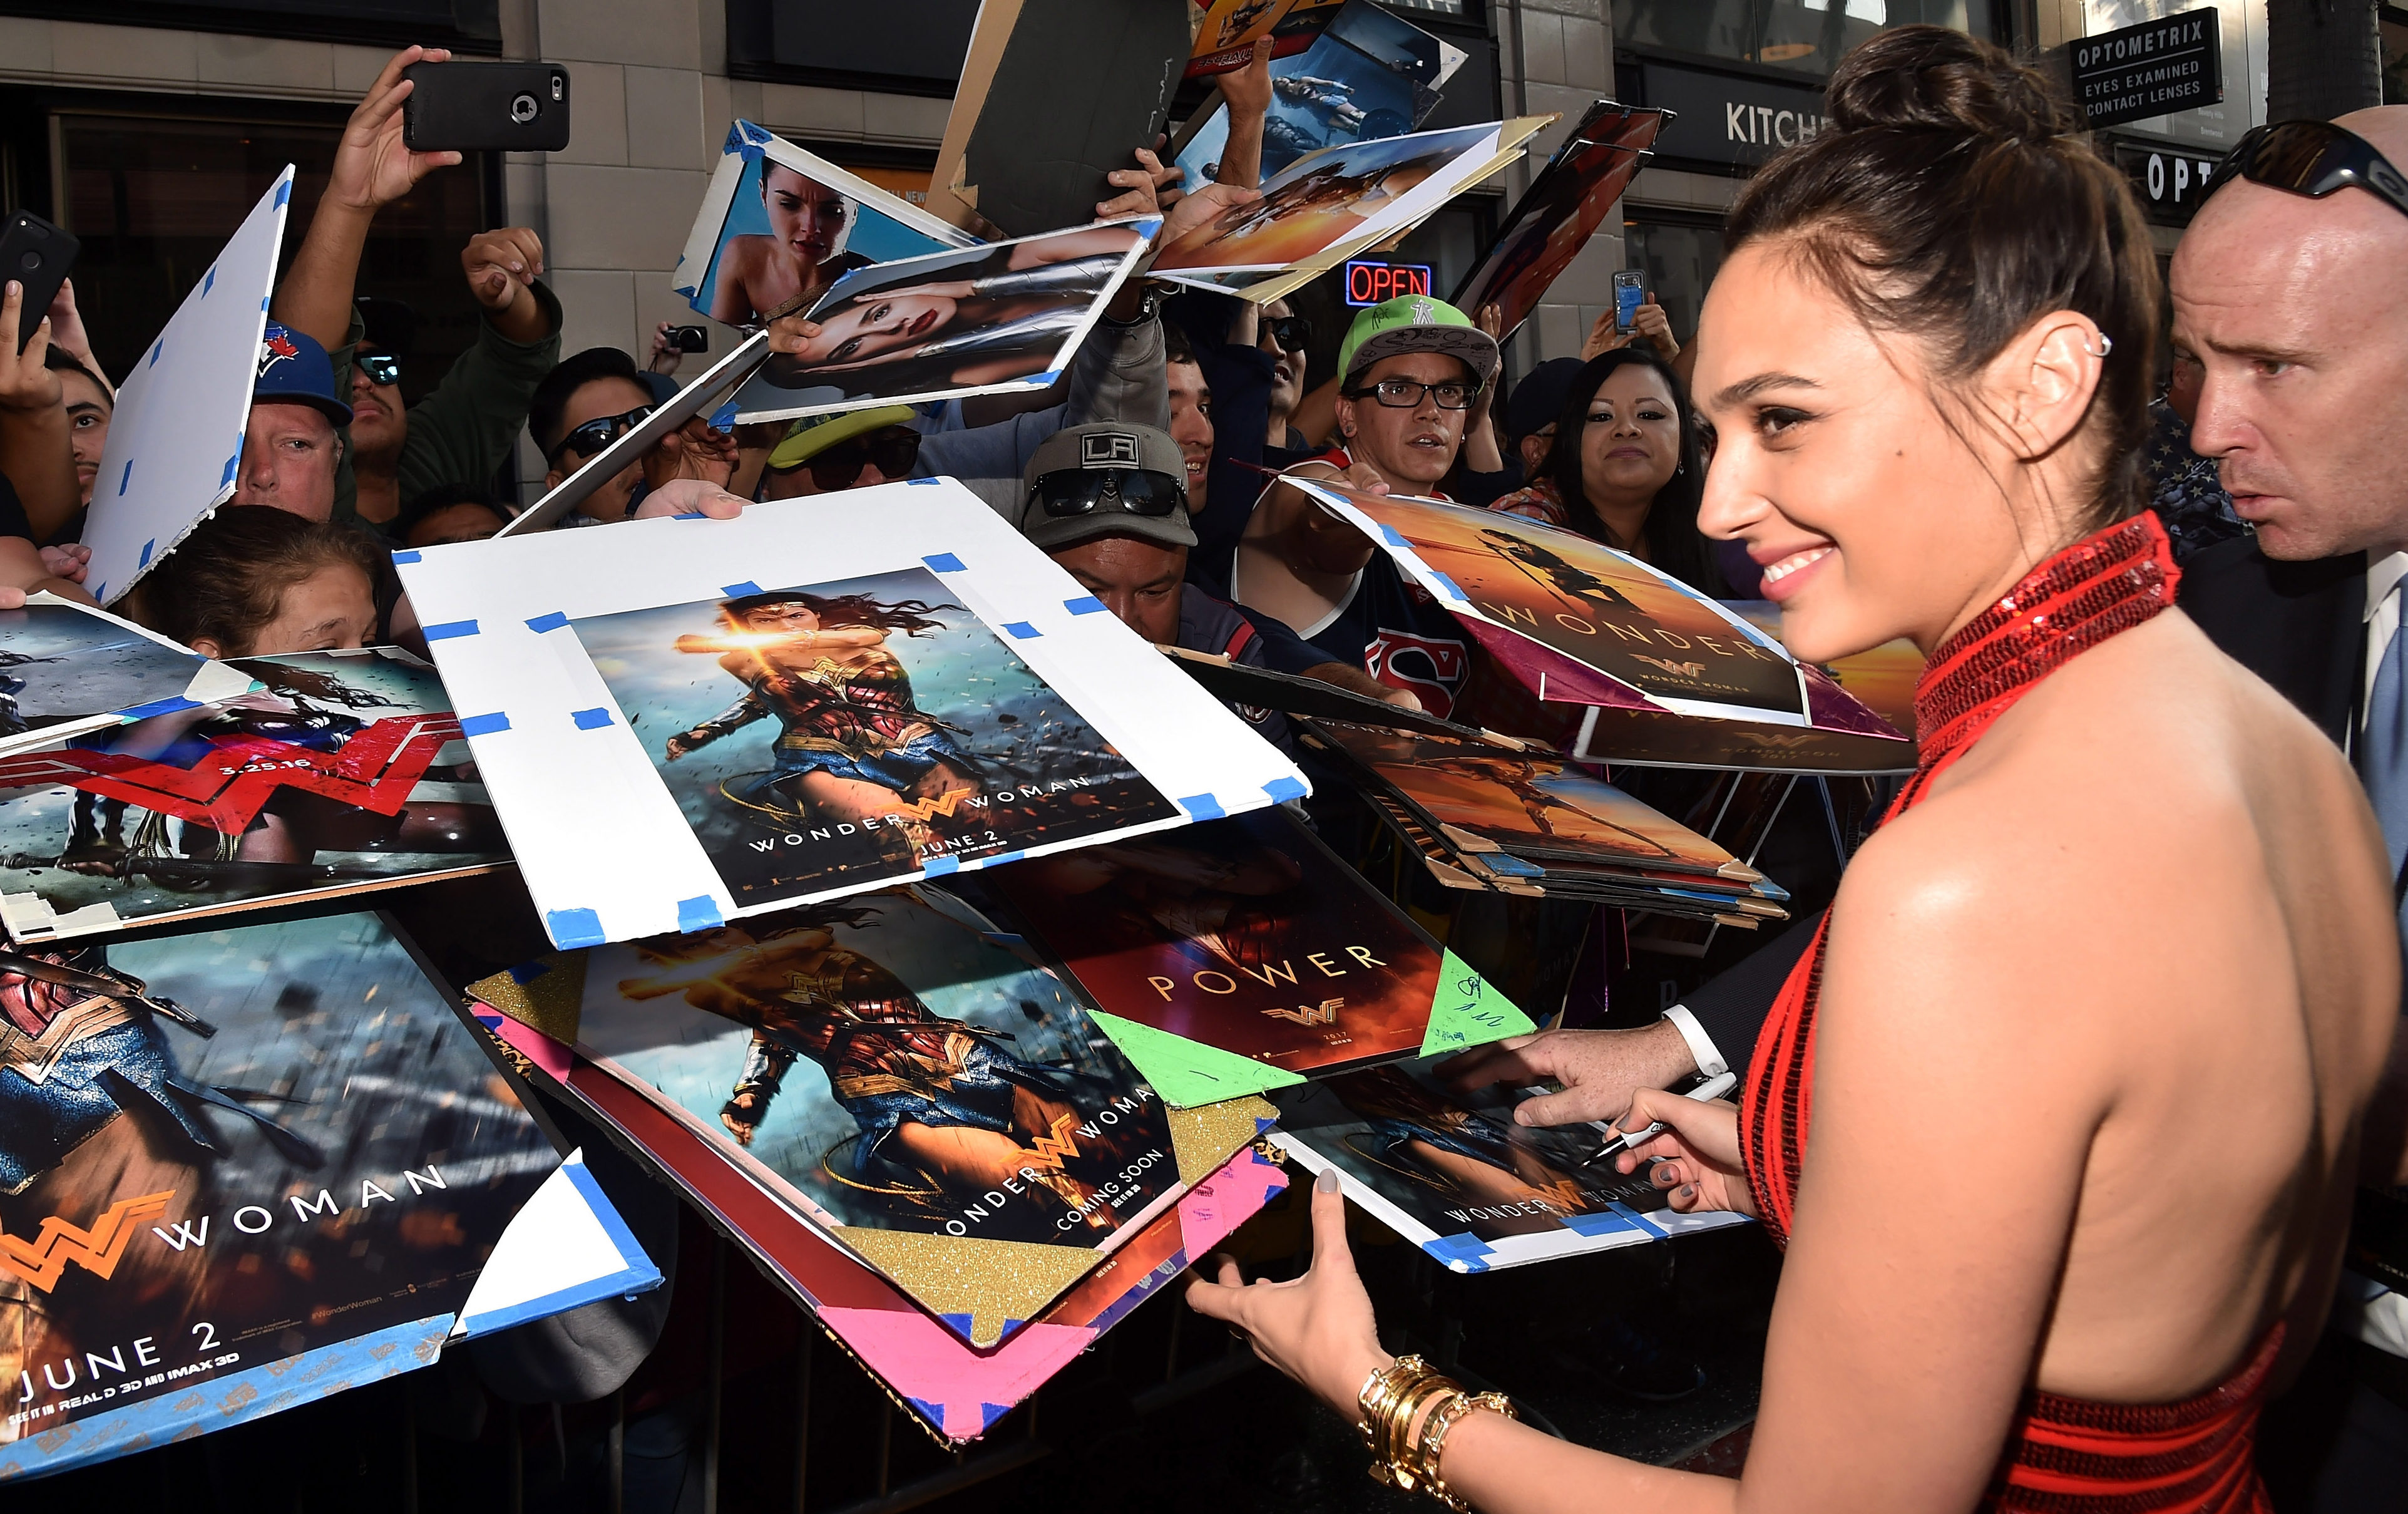 Gal Gadot signs posters for hordes of adoring fans